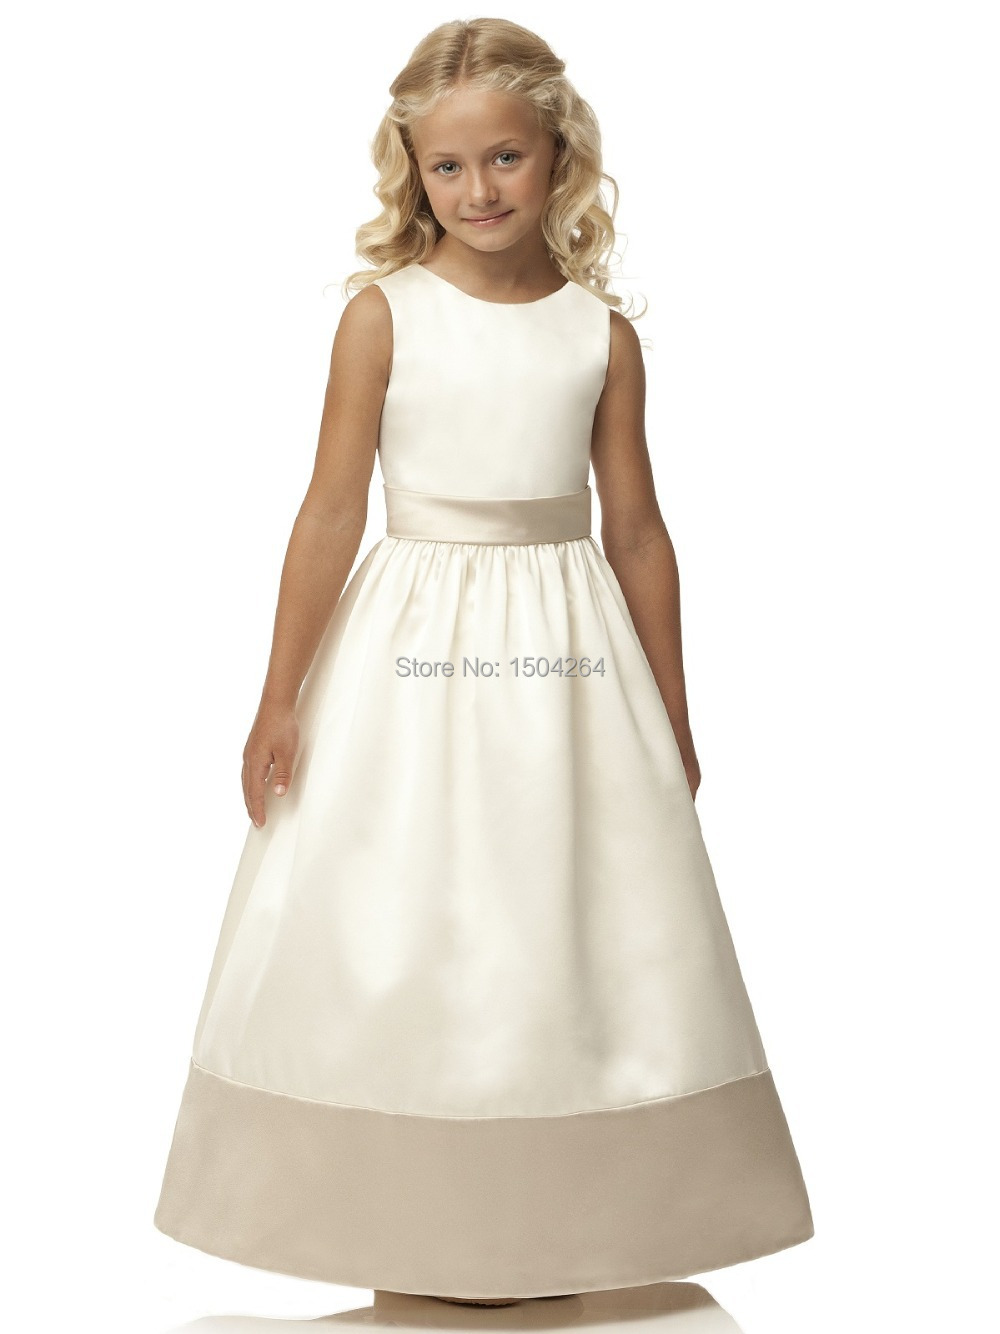 aae3b11f35e Get Quotations · New Products 2015 A-line Little Girl Pageant Dress Gowns  White Satin Flower Girl